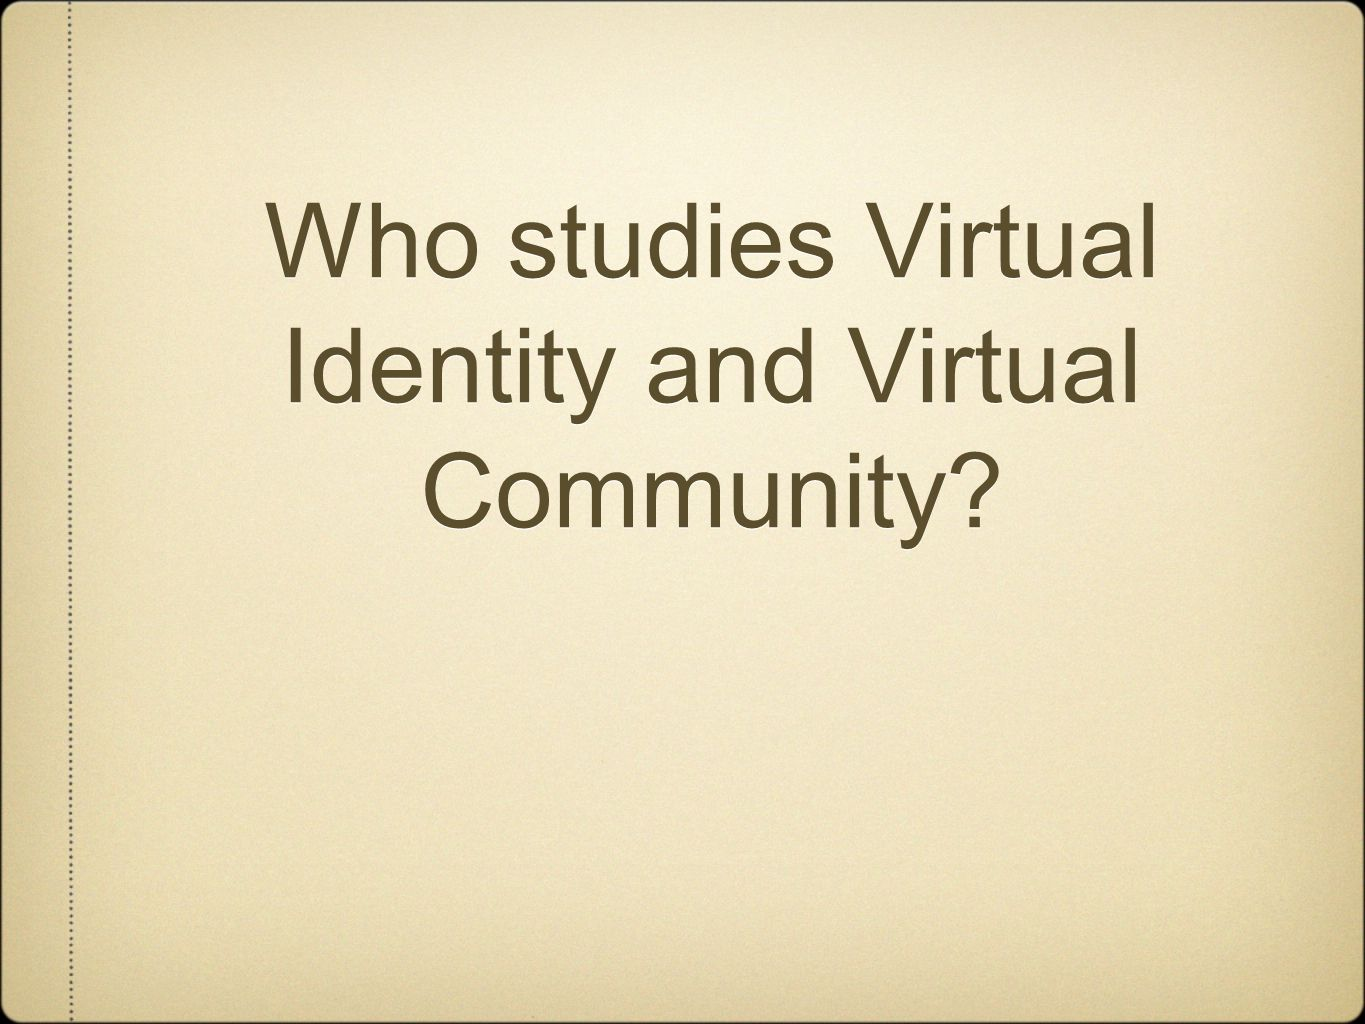 Who studies Virtual Identity and Virtual Community